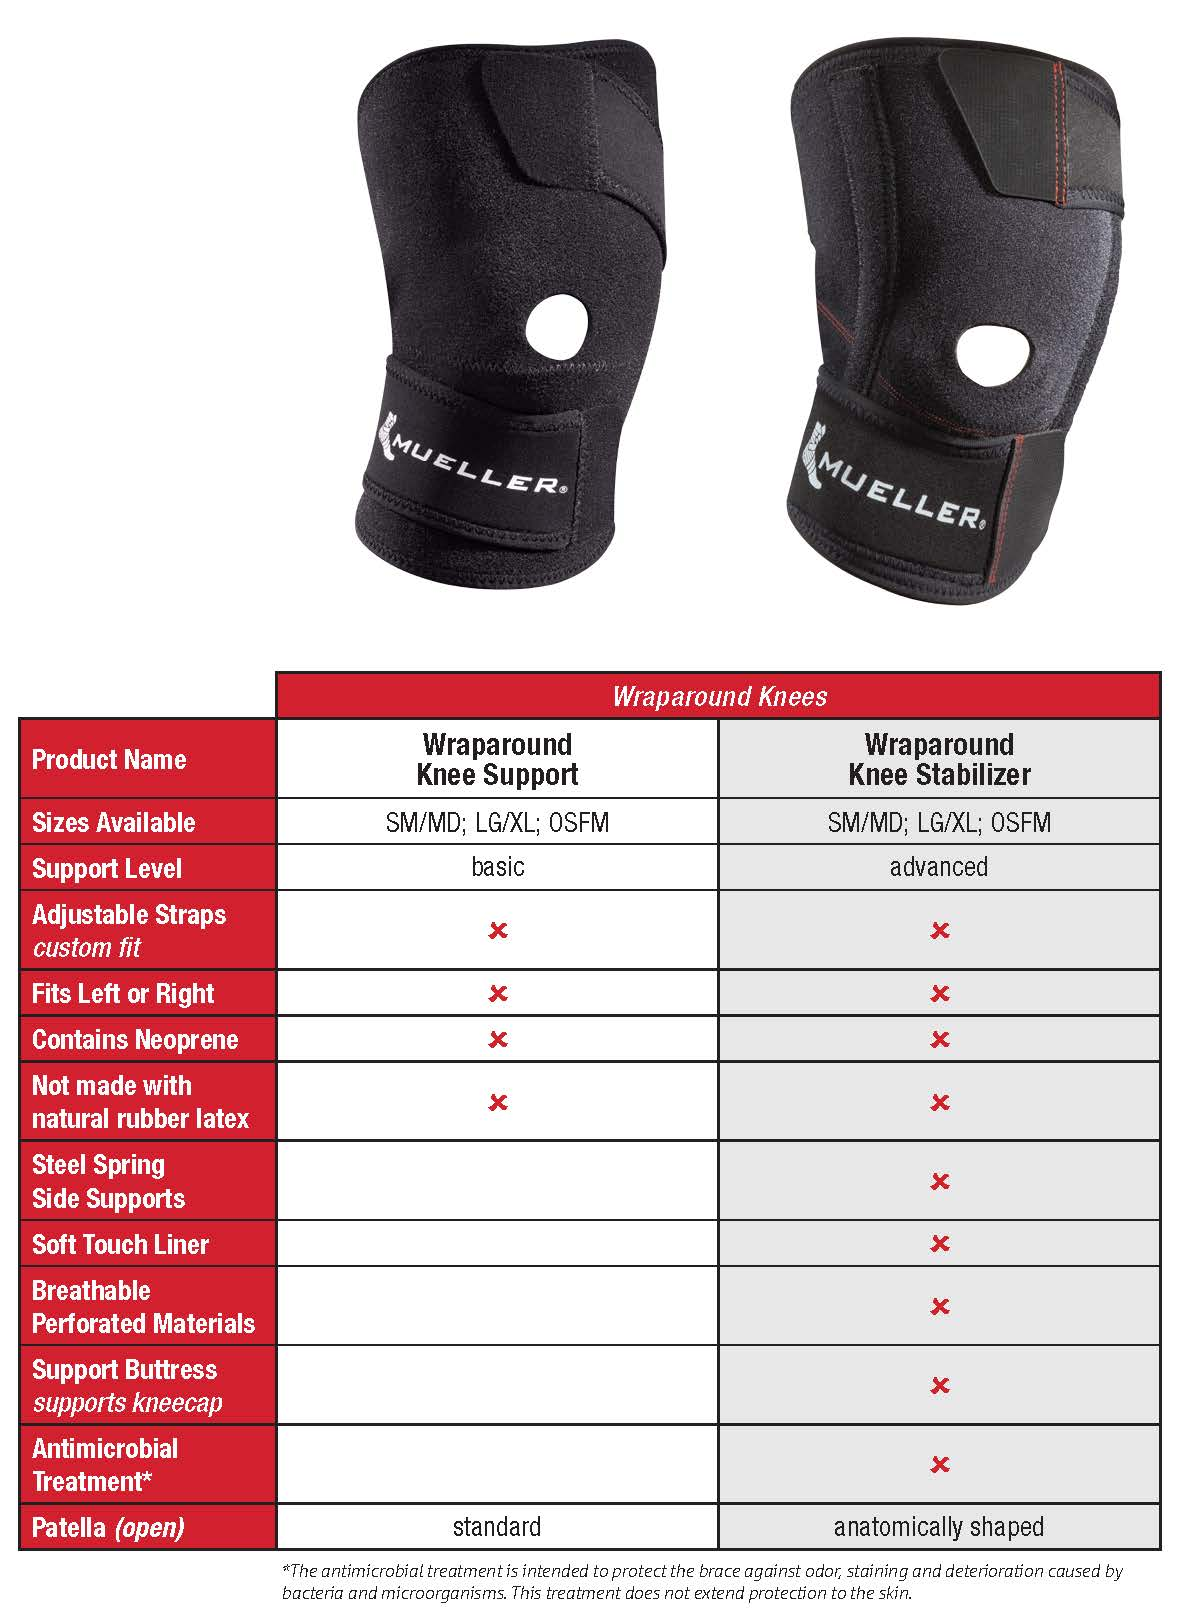 Wraparound Knee Stabilizer Comparison Chart